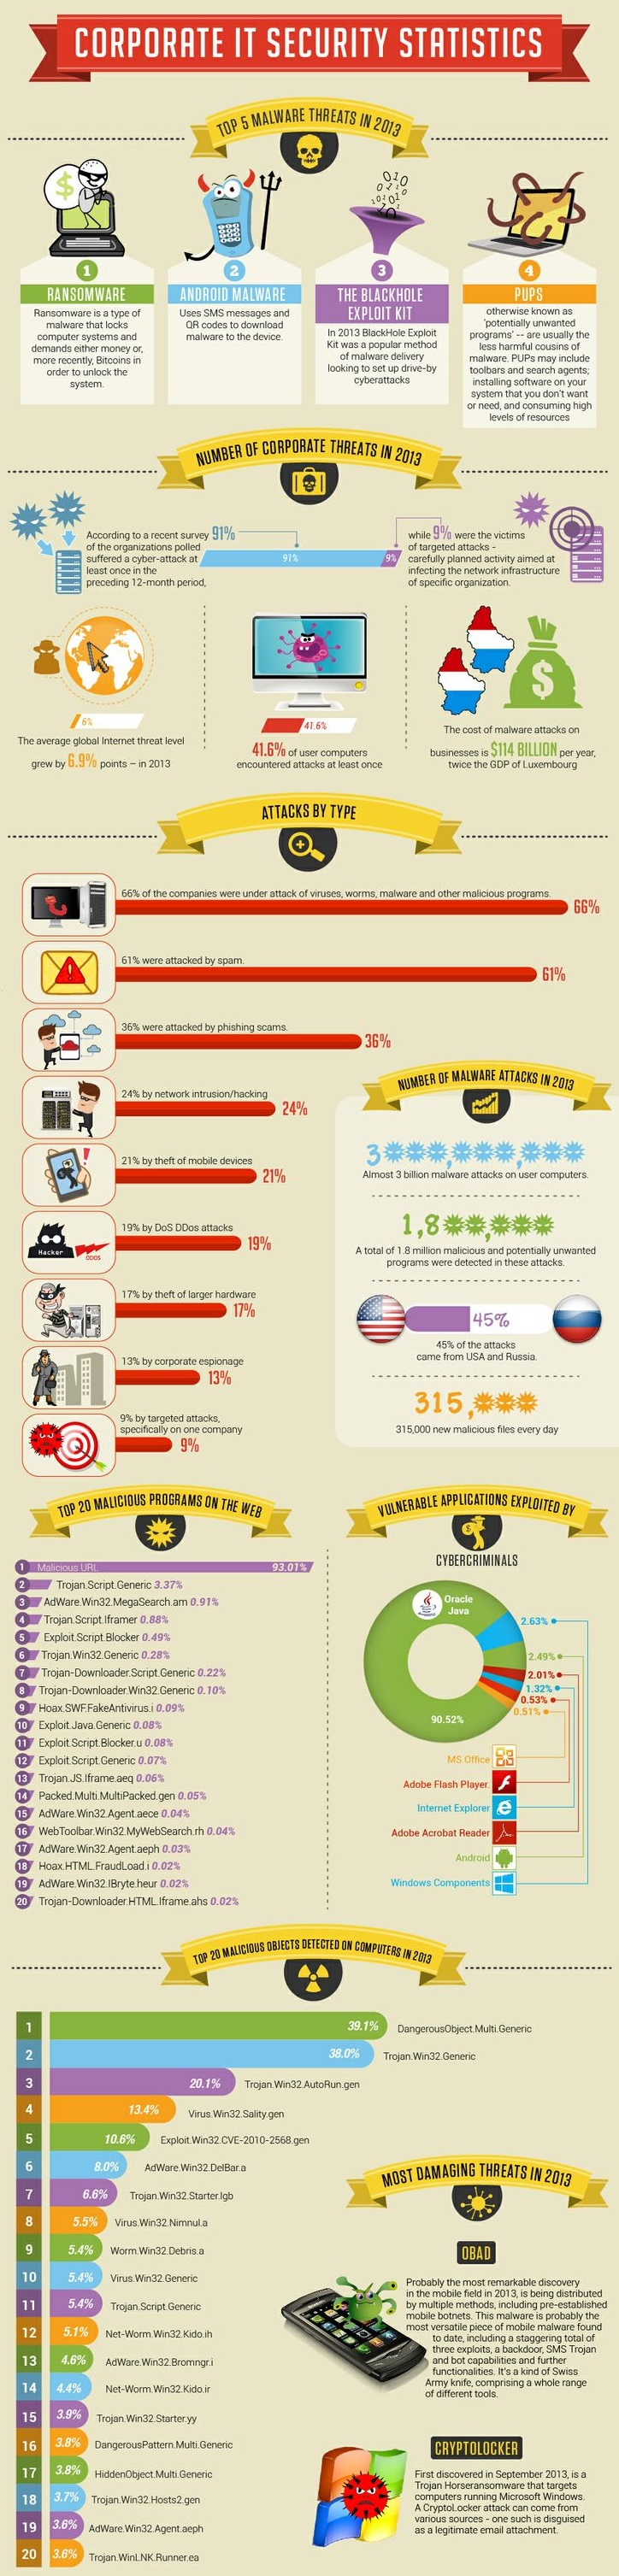 corporate it statistics for security 2013